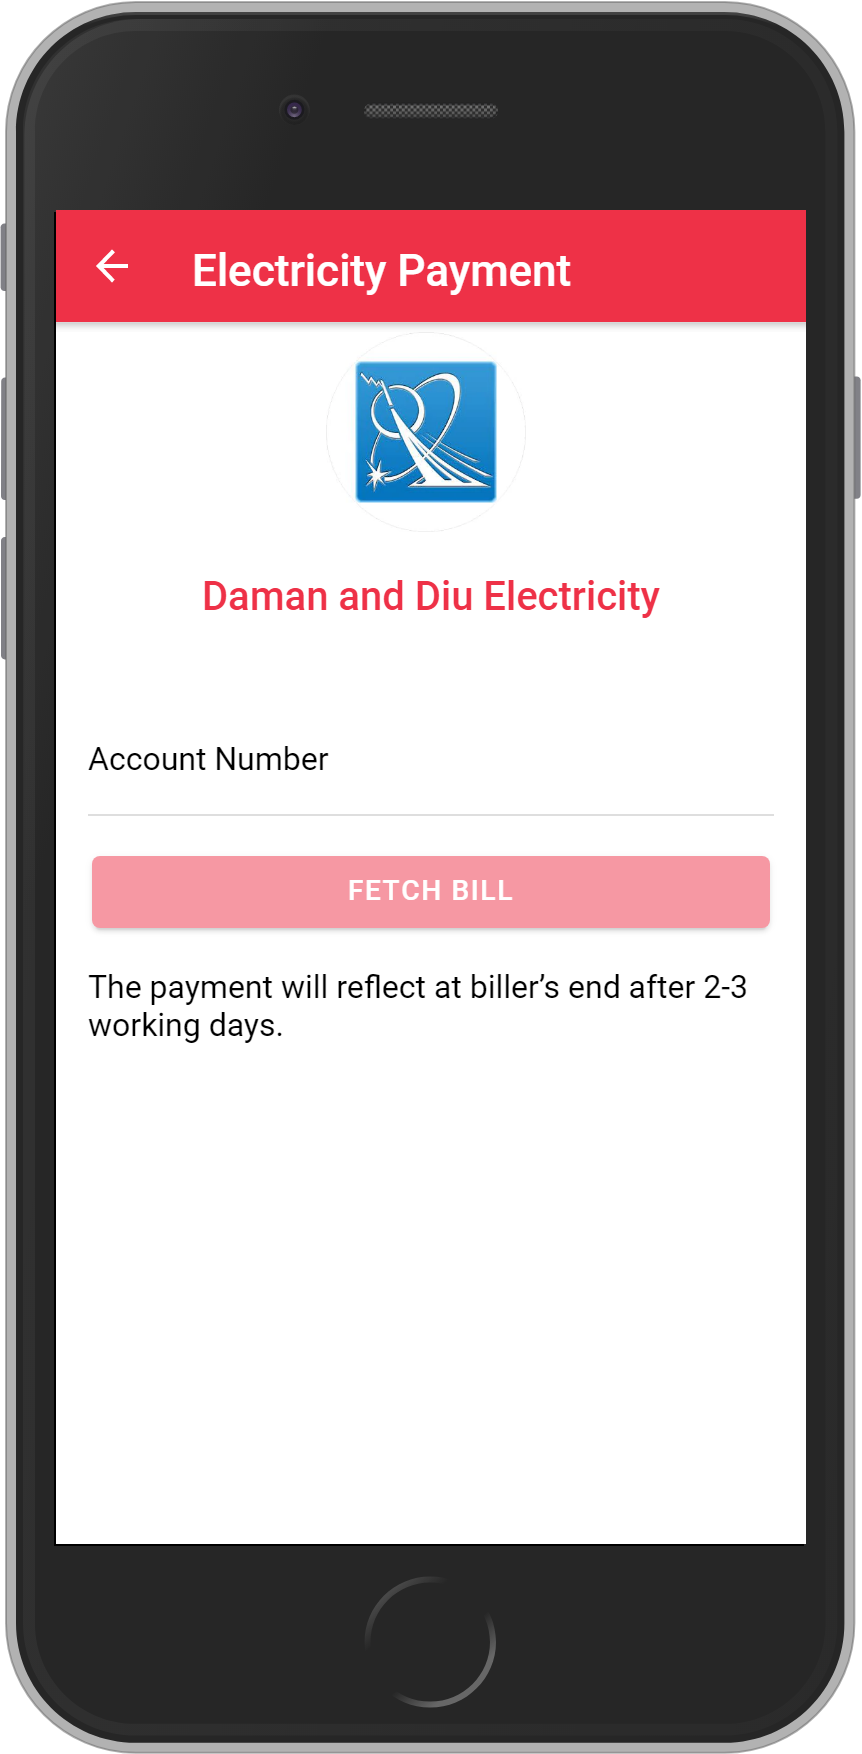 Get UNLIMITED <b>0.1%</b> CASHBACK on Daman and Diu Electricity Bill Payment.